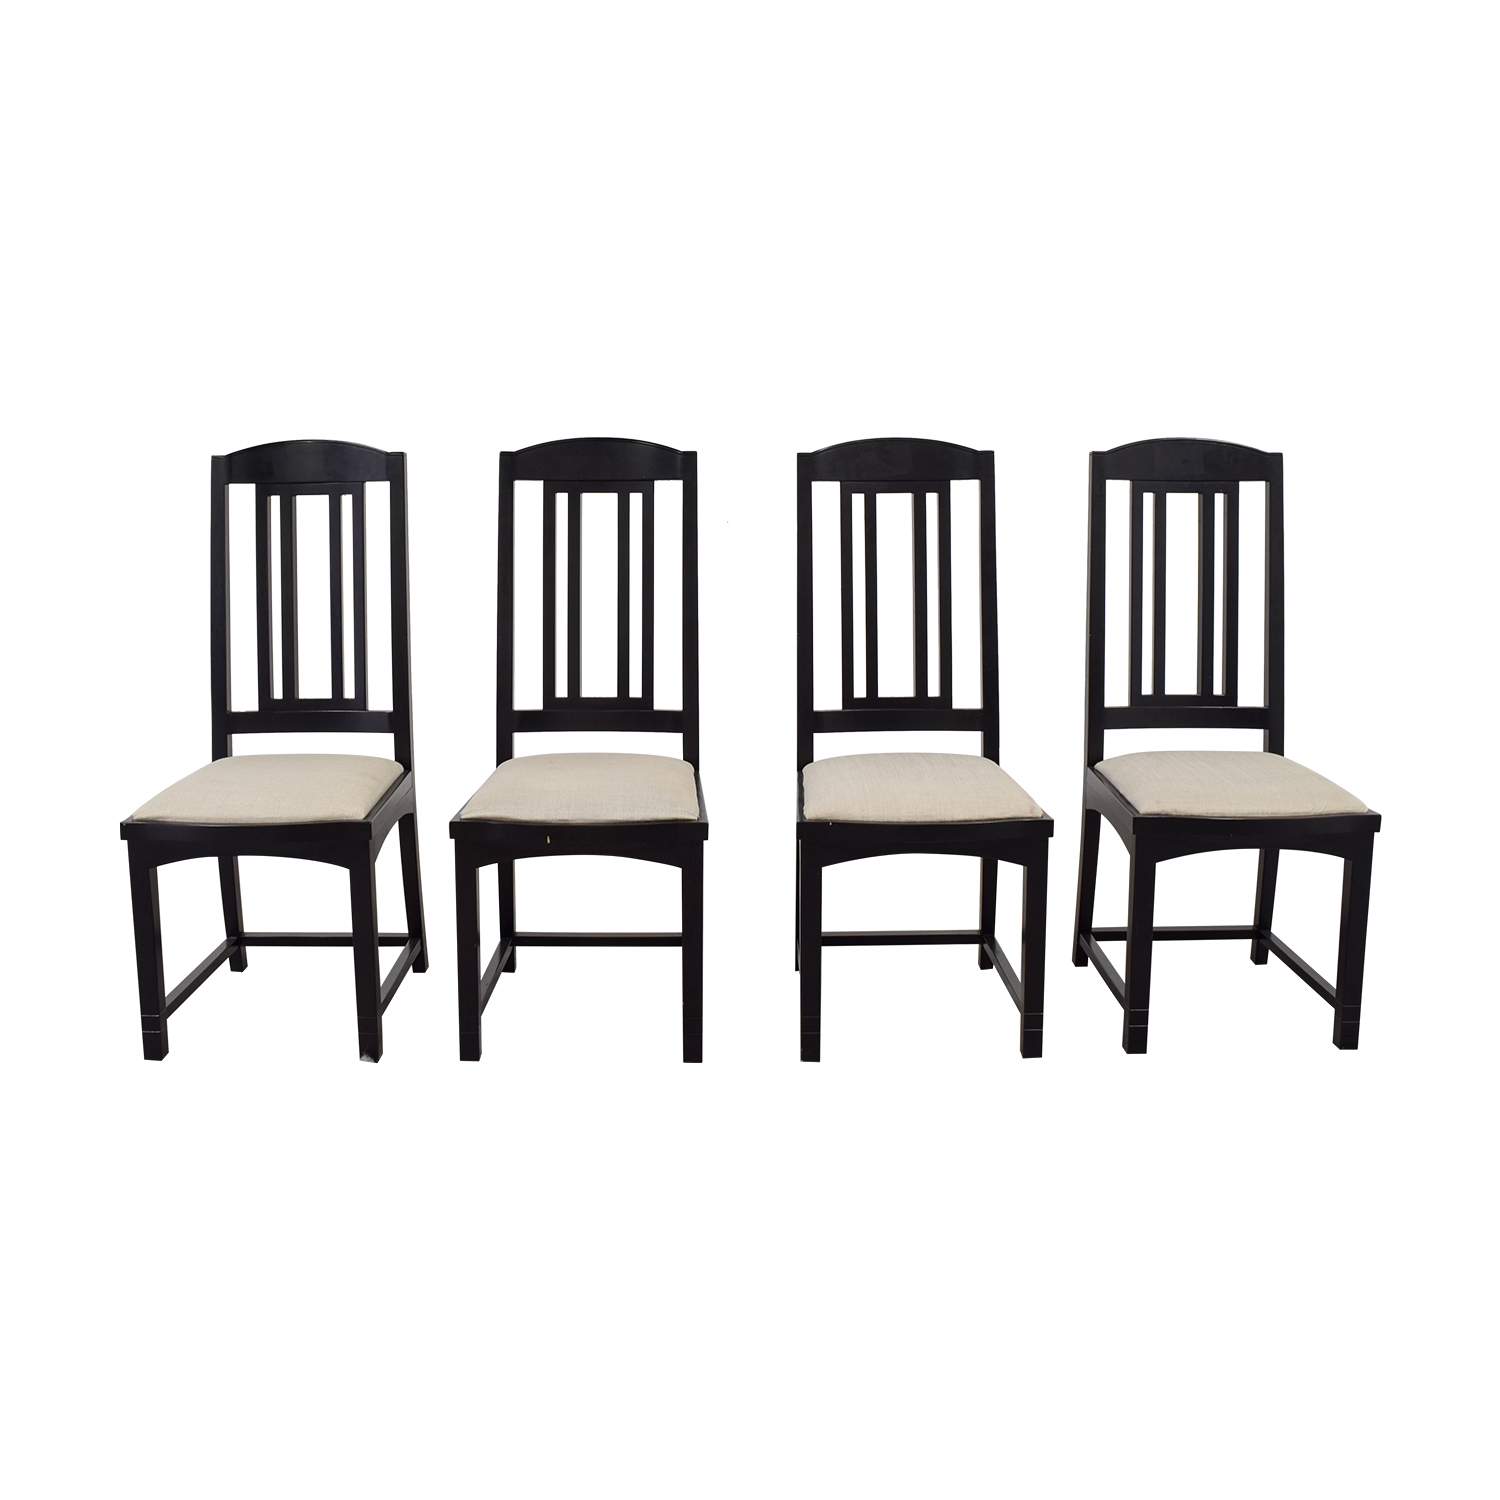 PACE Collection Black Dining Chairs / Dining Chairs